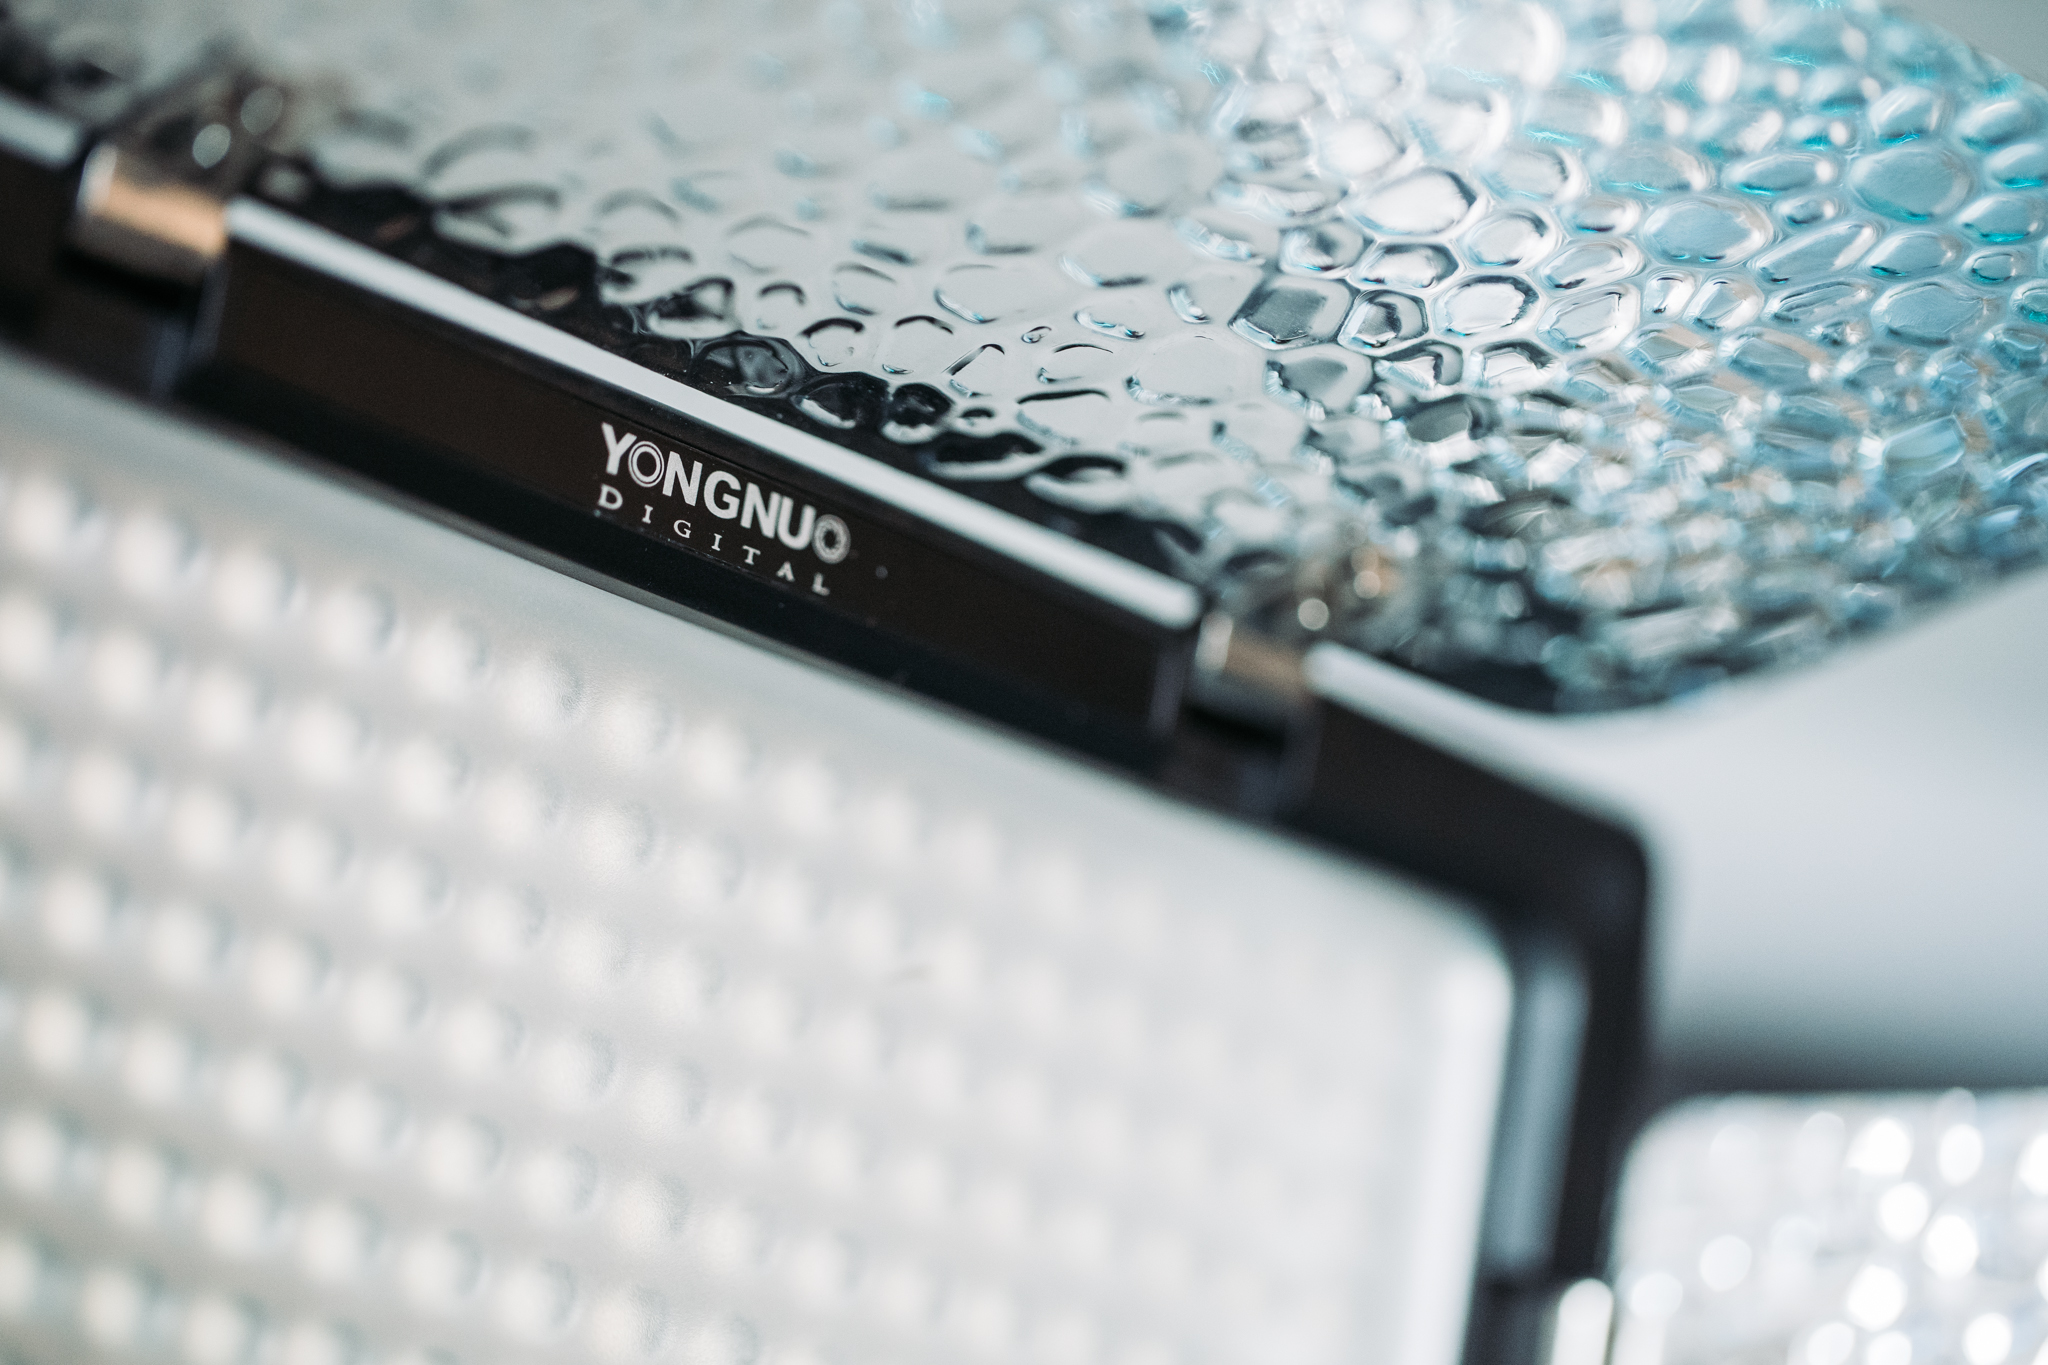 Daylight balanced LED panels - ideal for video or product photography